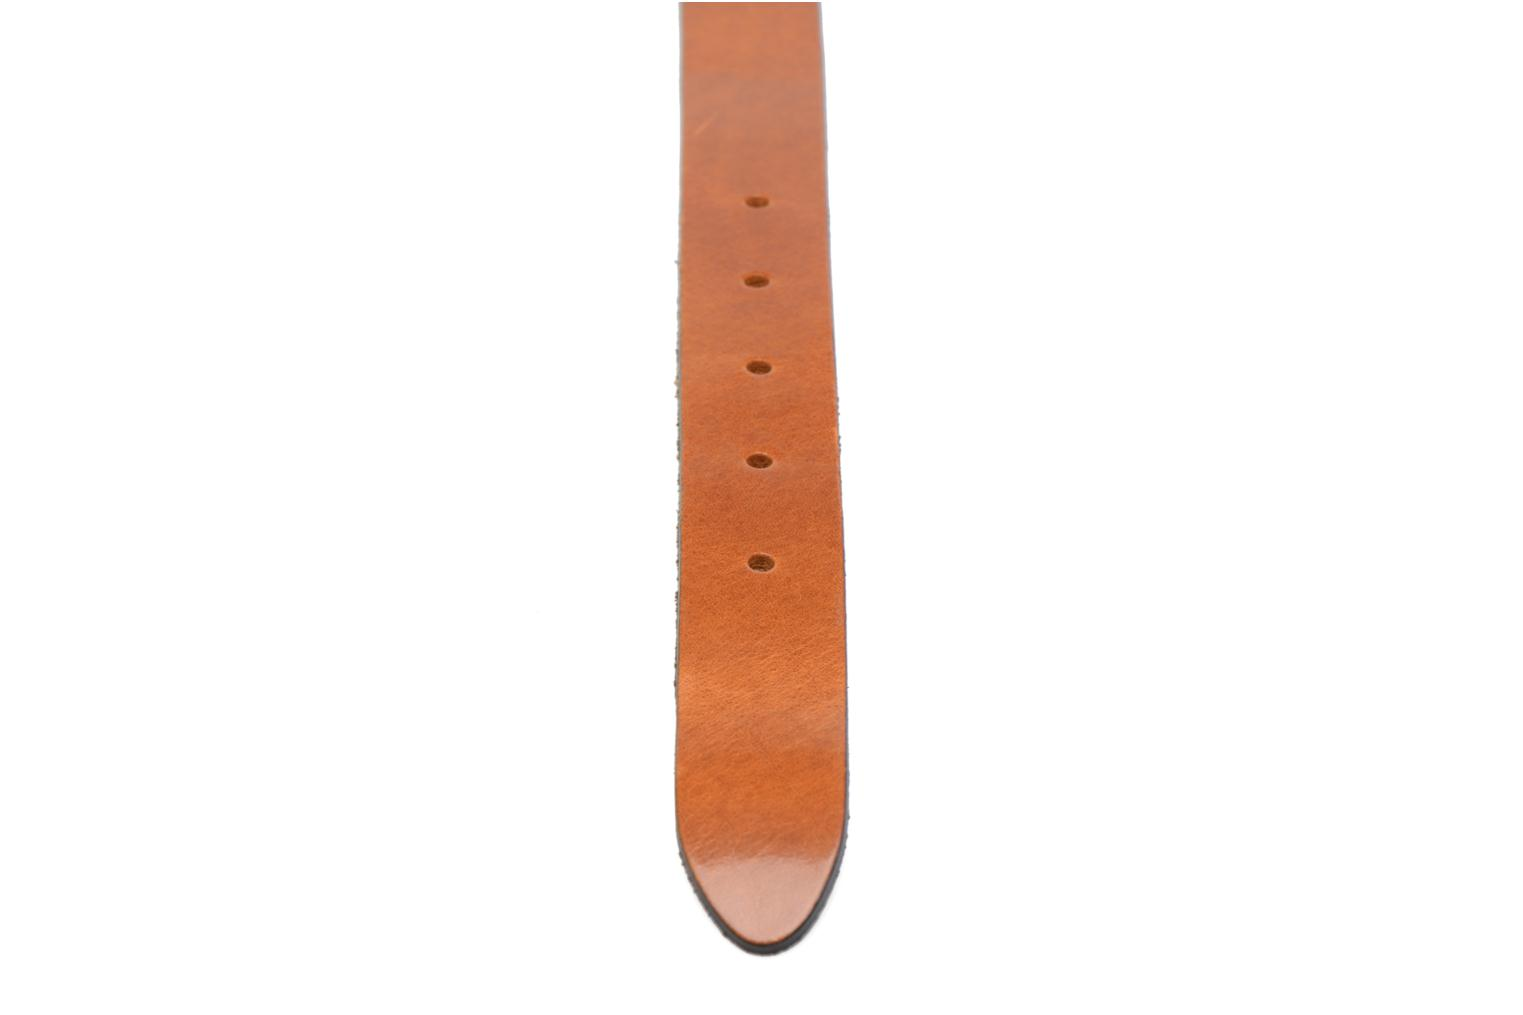 Ceintures Esprit Vintage Leather Belt 30mm Marron vue face